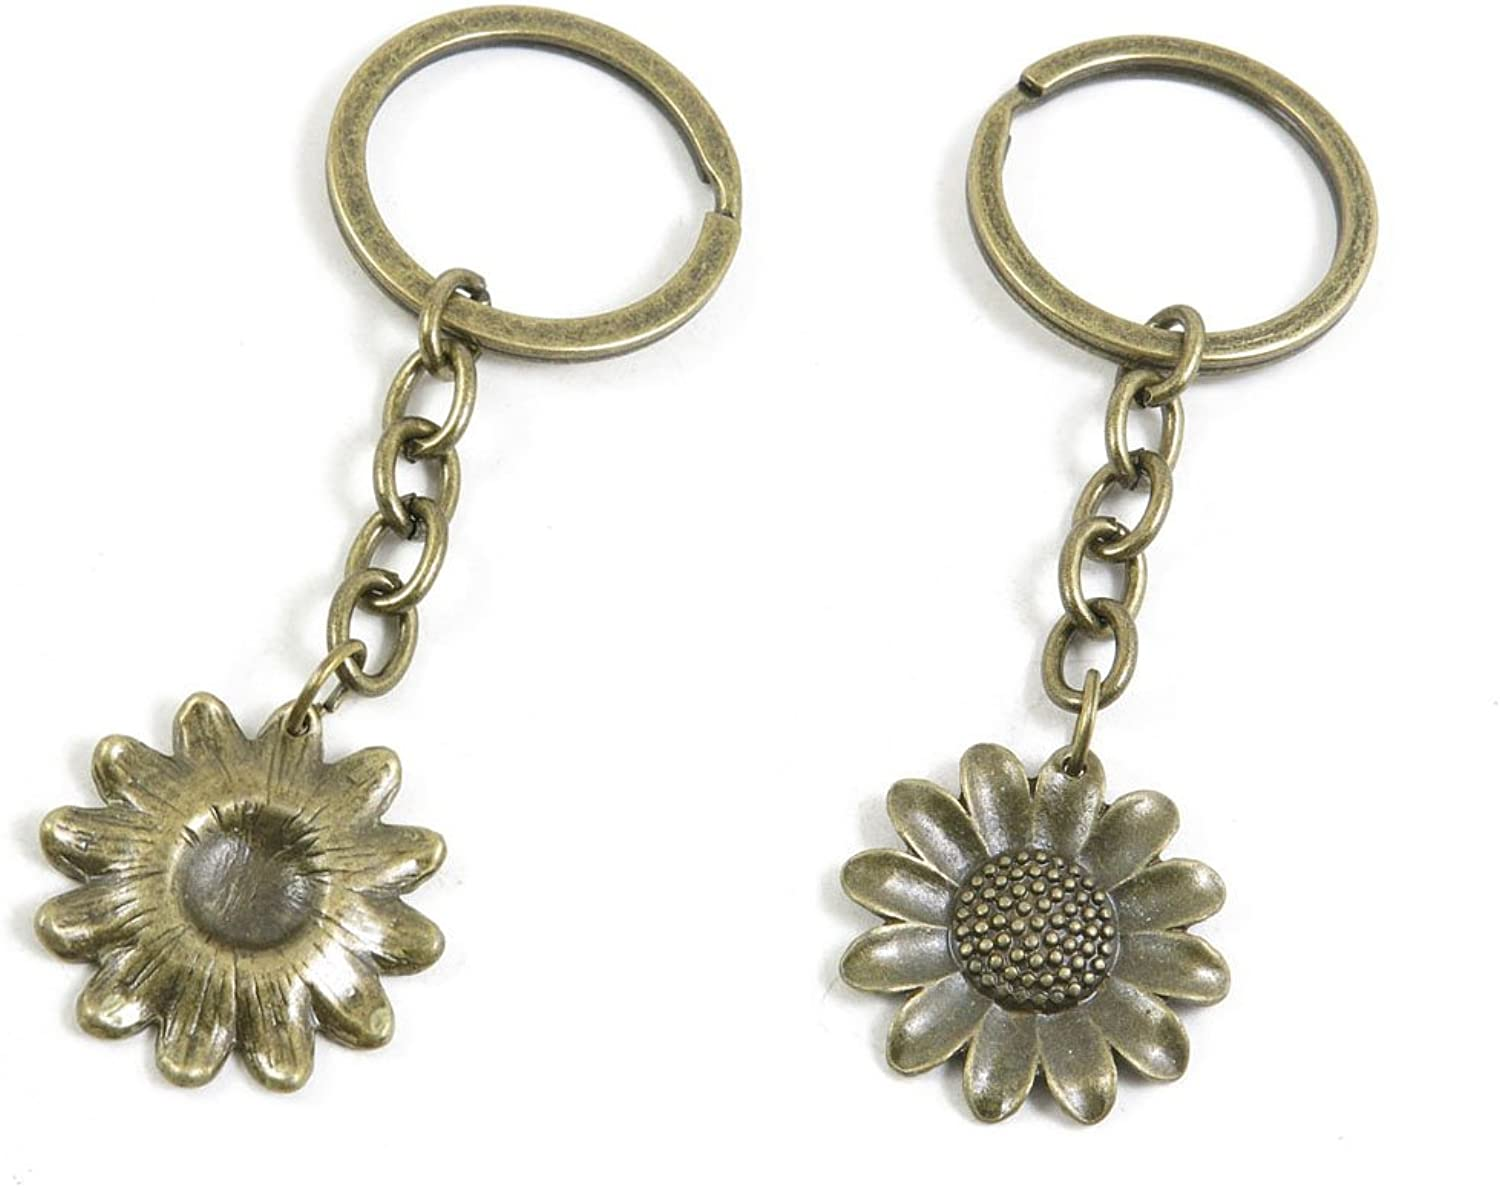 180 Pieces Fashion Jewelry Keyring Keychain Door Car Key Tag Ring Chain Supplier Supply Wholesale Bulk Lots P9HD7 Sunflower